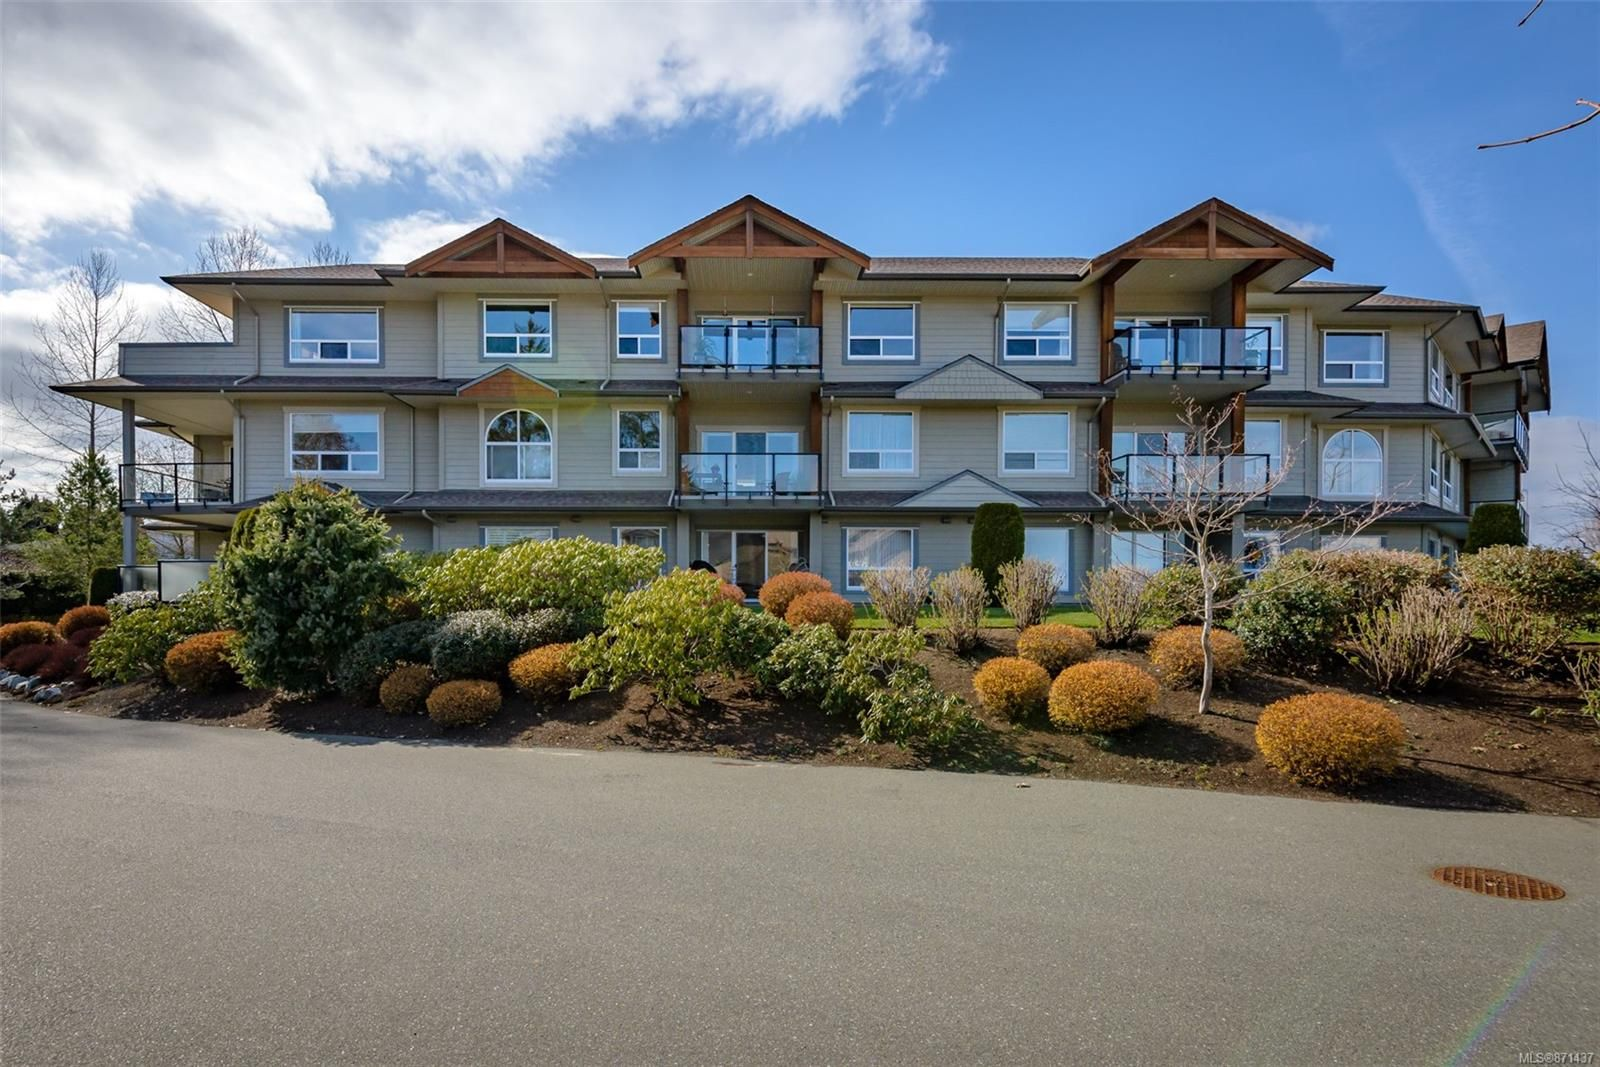 Main Photo: 307 199 31st St in : CV Courtenay City Condo for sale (Comox Valley)  : MLS®# 871437